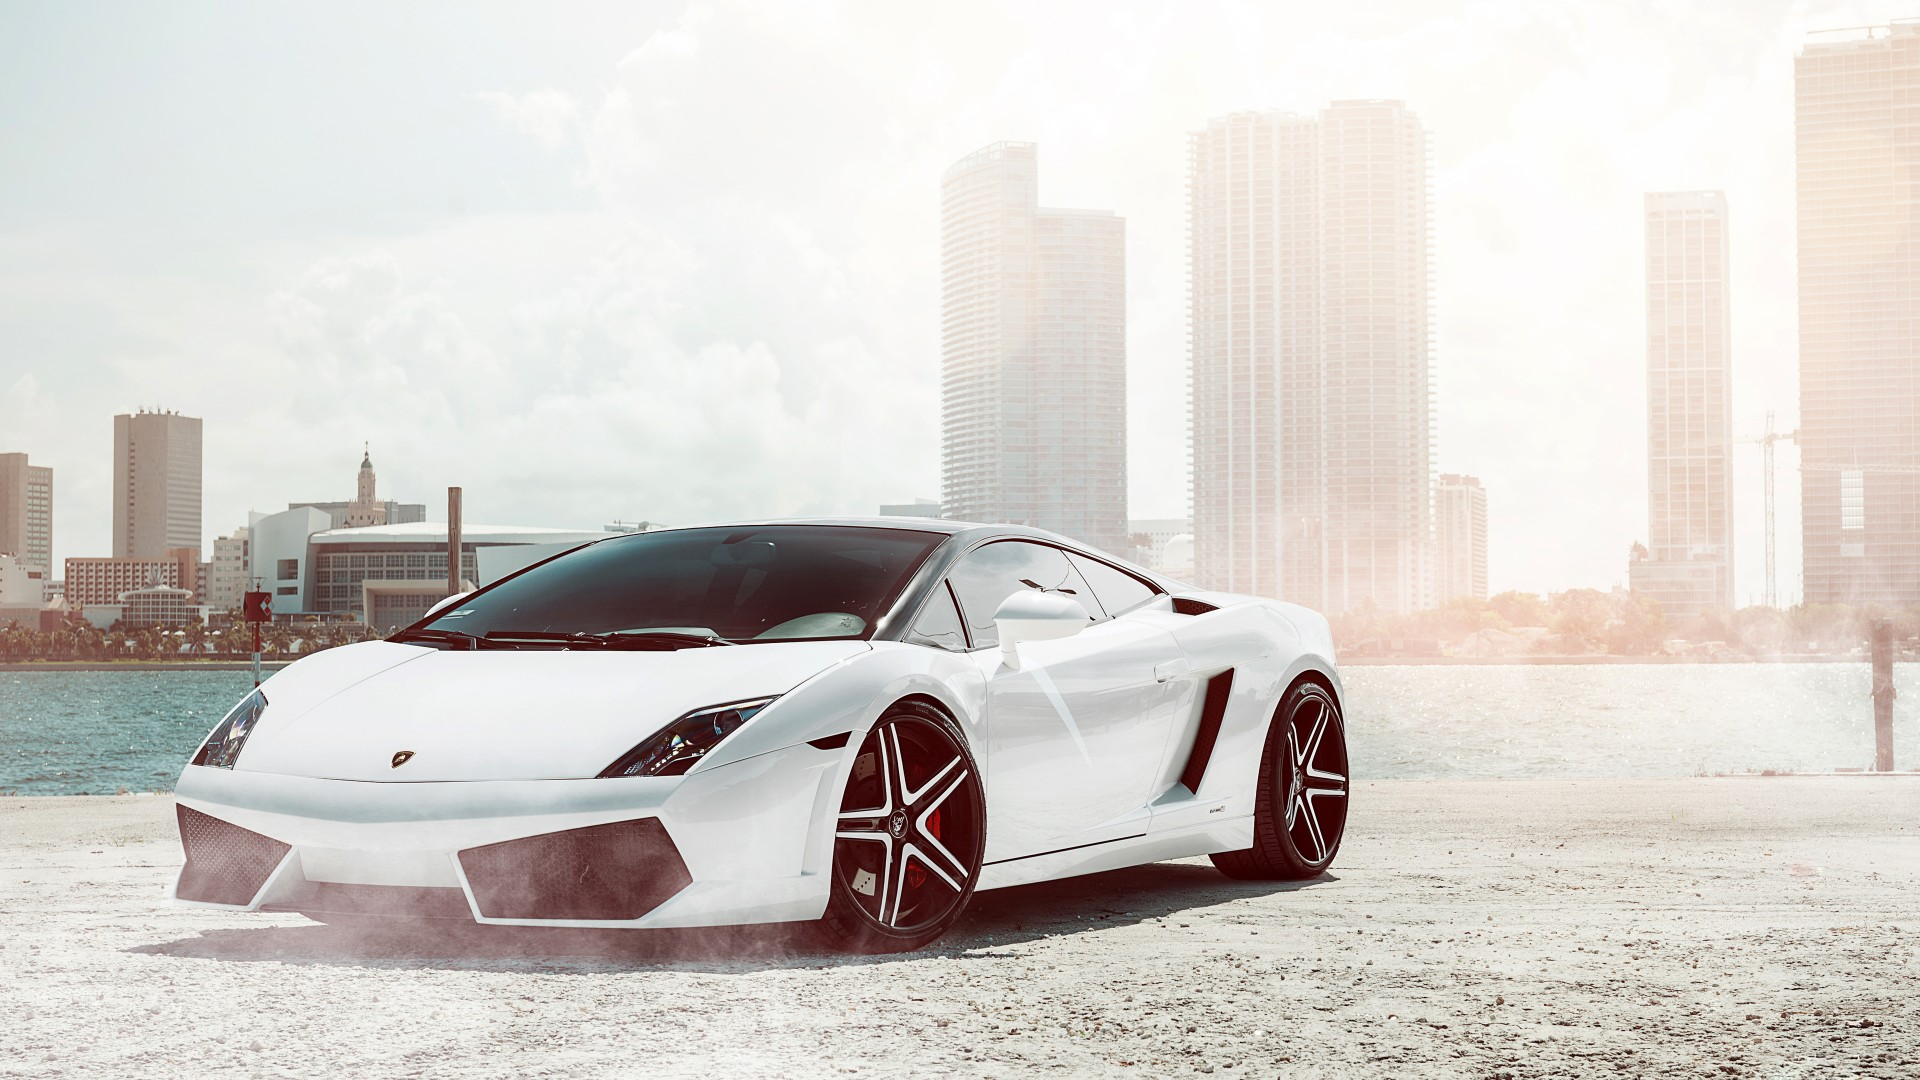 Lamborghini gallardo white wallpaper hd car wallpapers - Wallpaper hd 4k car ...